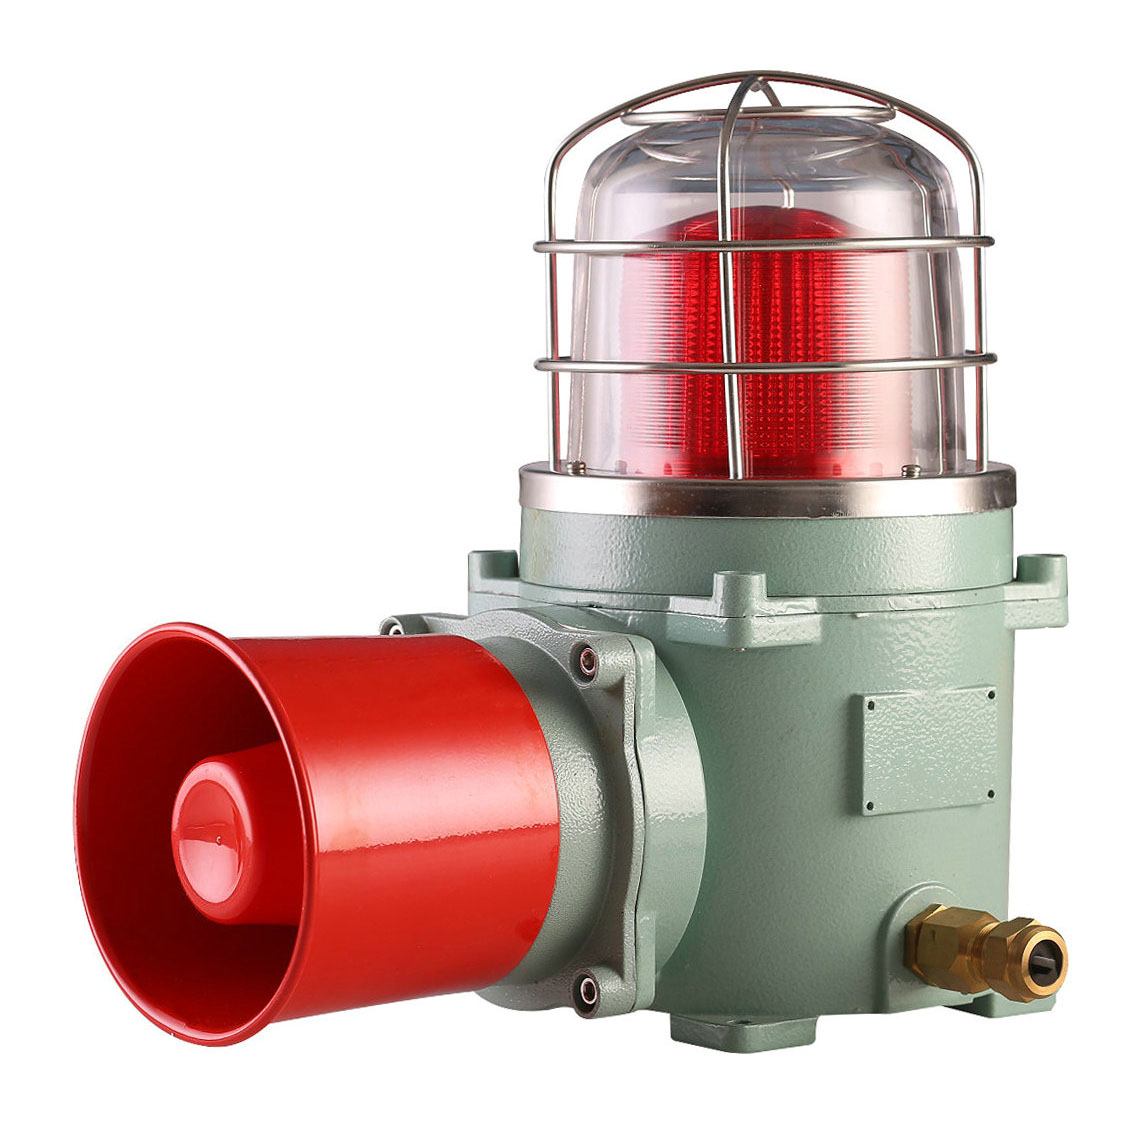 AESL-150 Explosion Proof Alarm Sounder With Warning Beacon